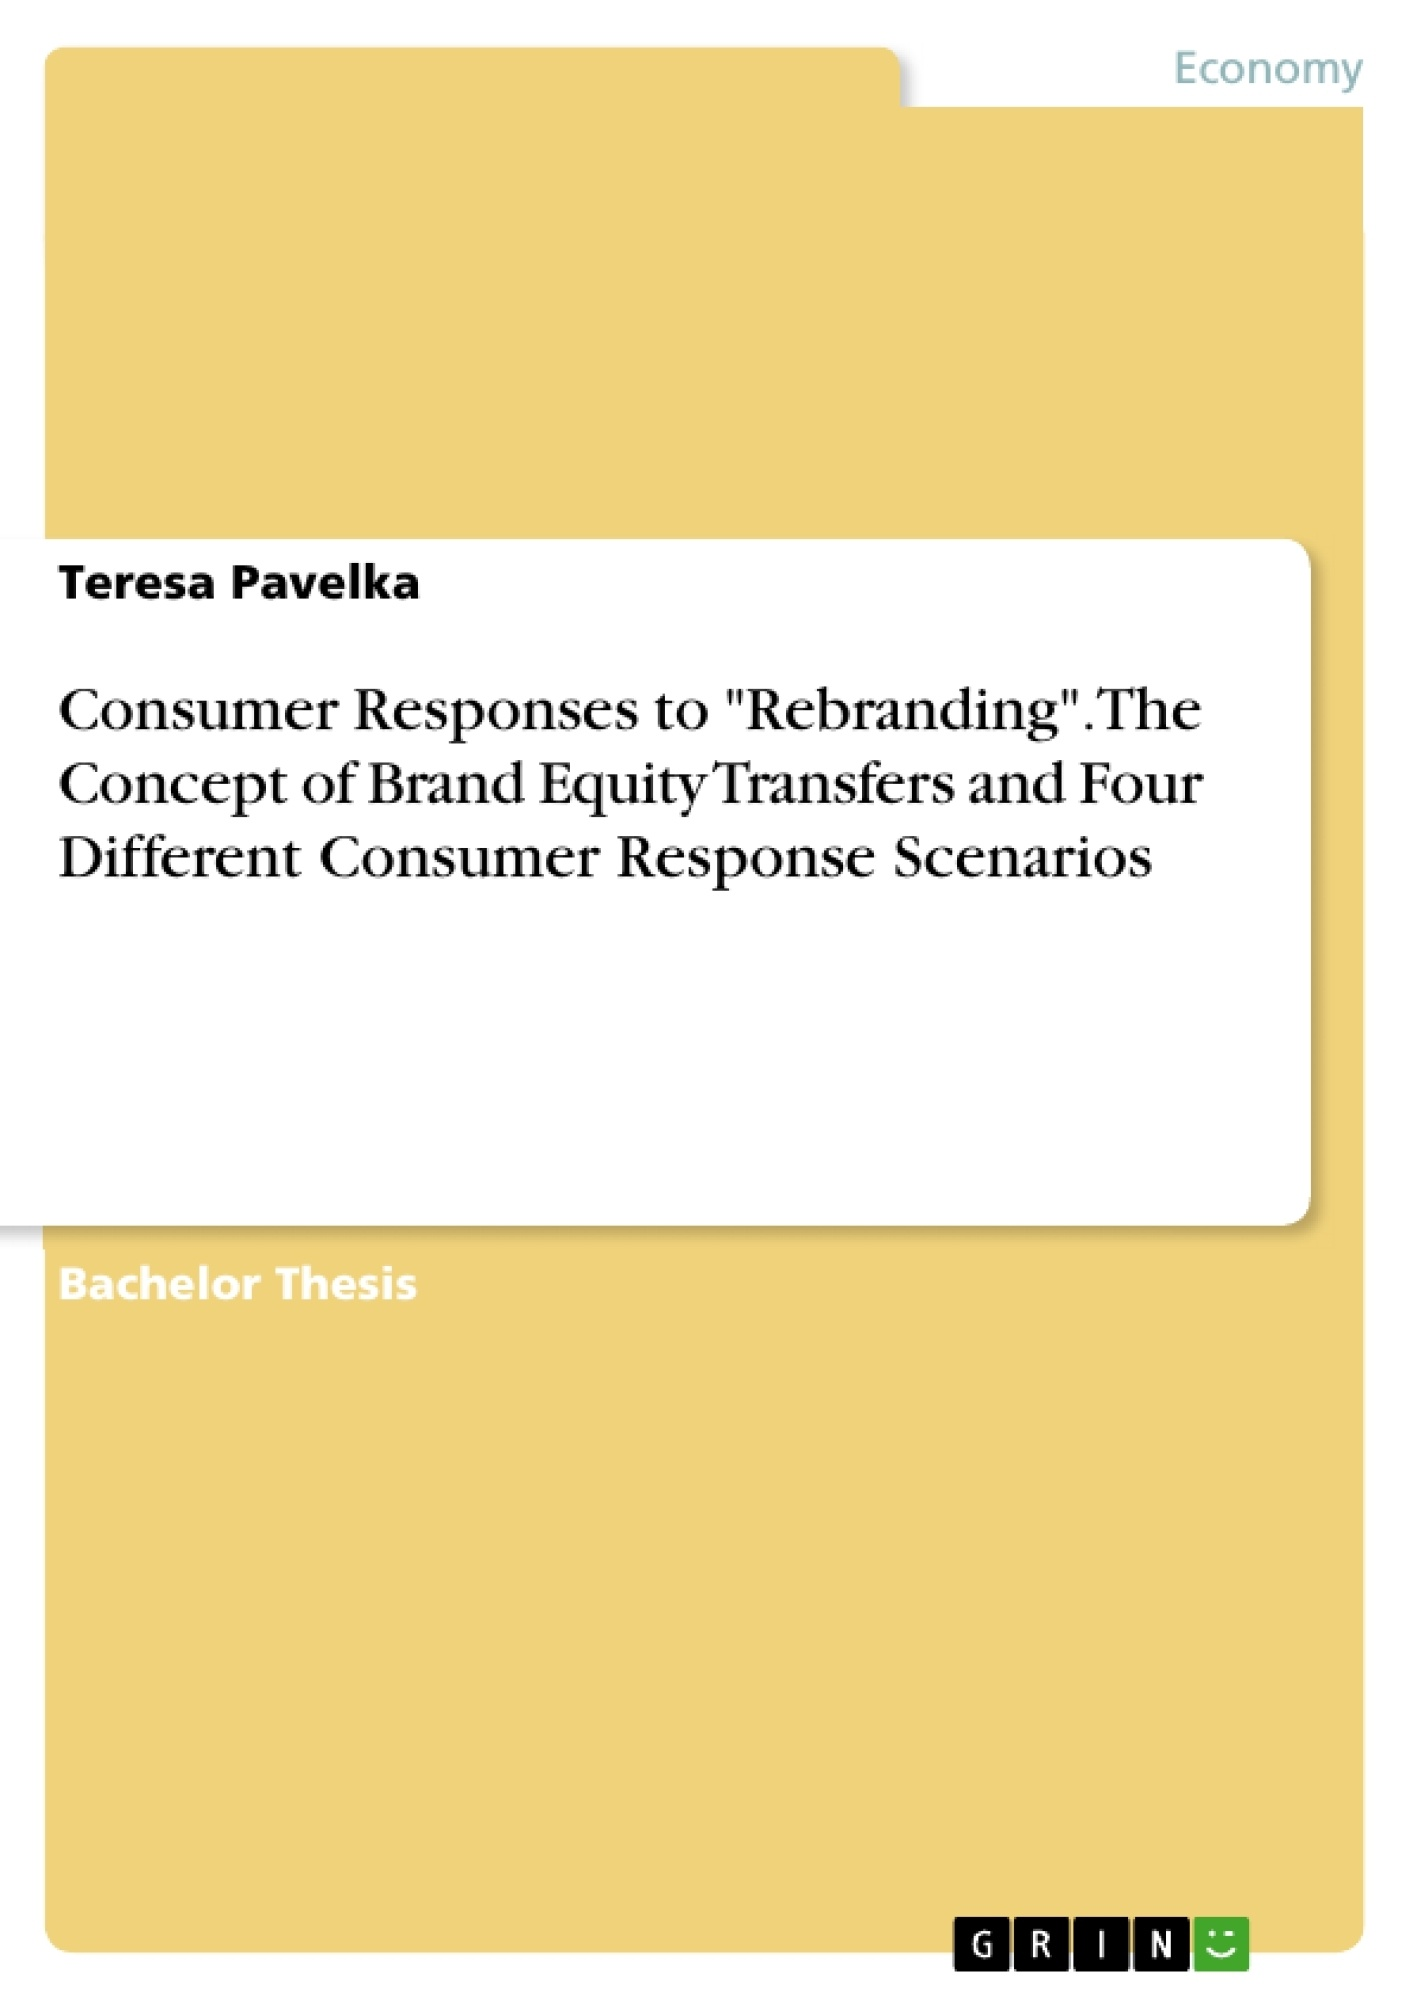 """Title: Consumer Responses to """"Rebranding"""". The Concept of Brand Equity Transfers and Four Different Consumer Response Scenarios"""